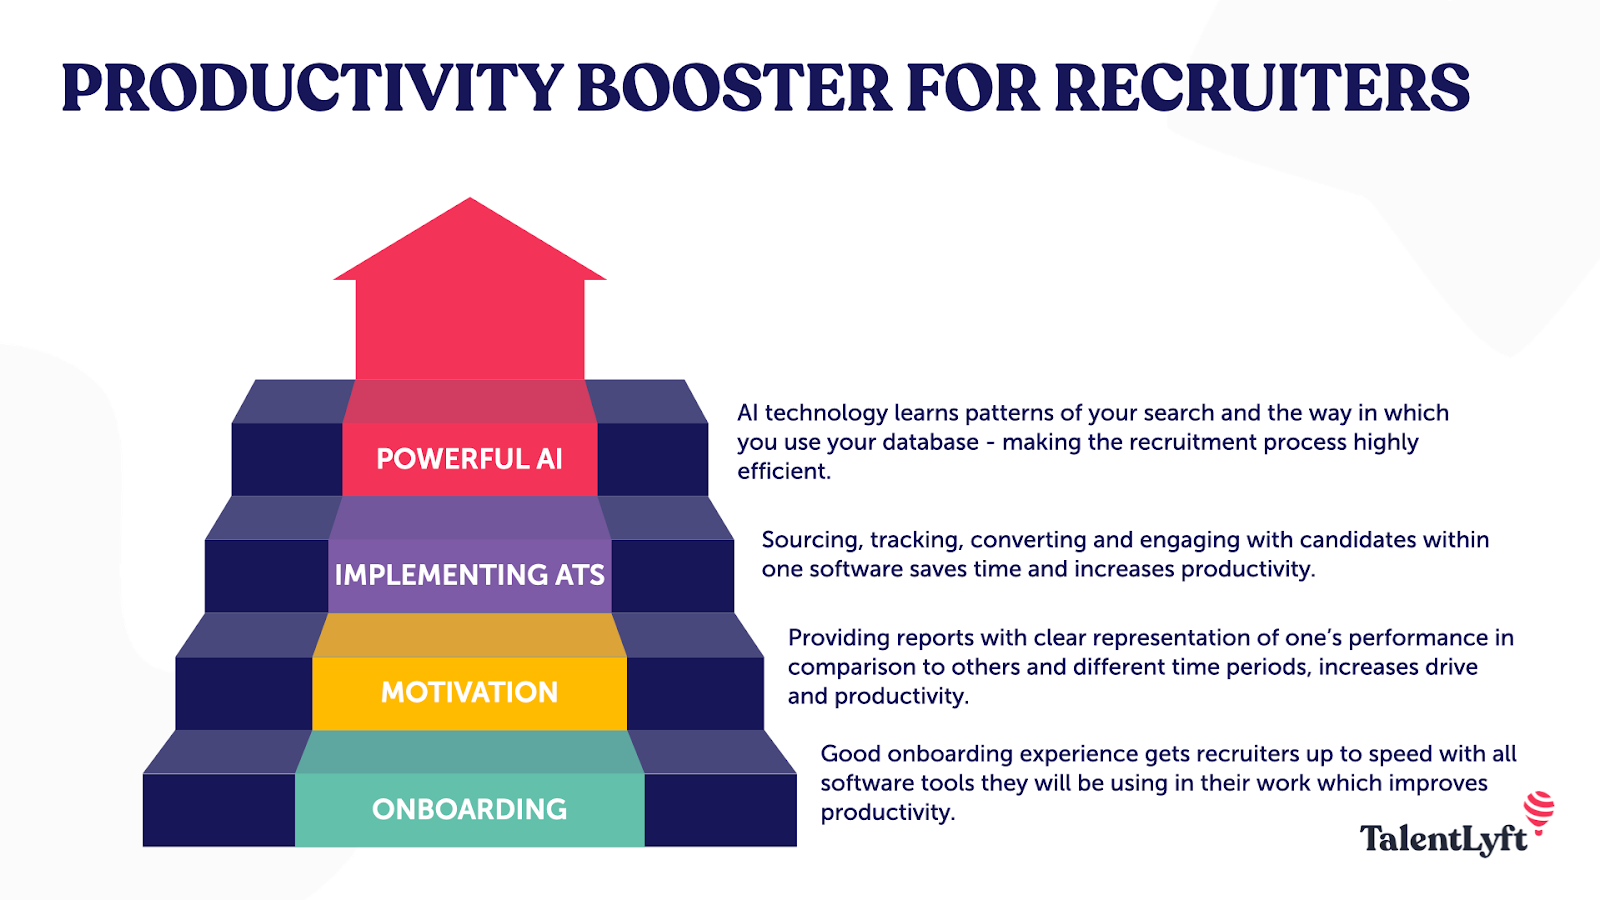 boosting productivity for recruiters